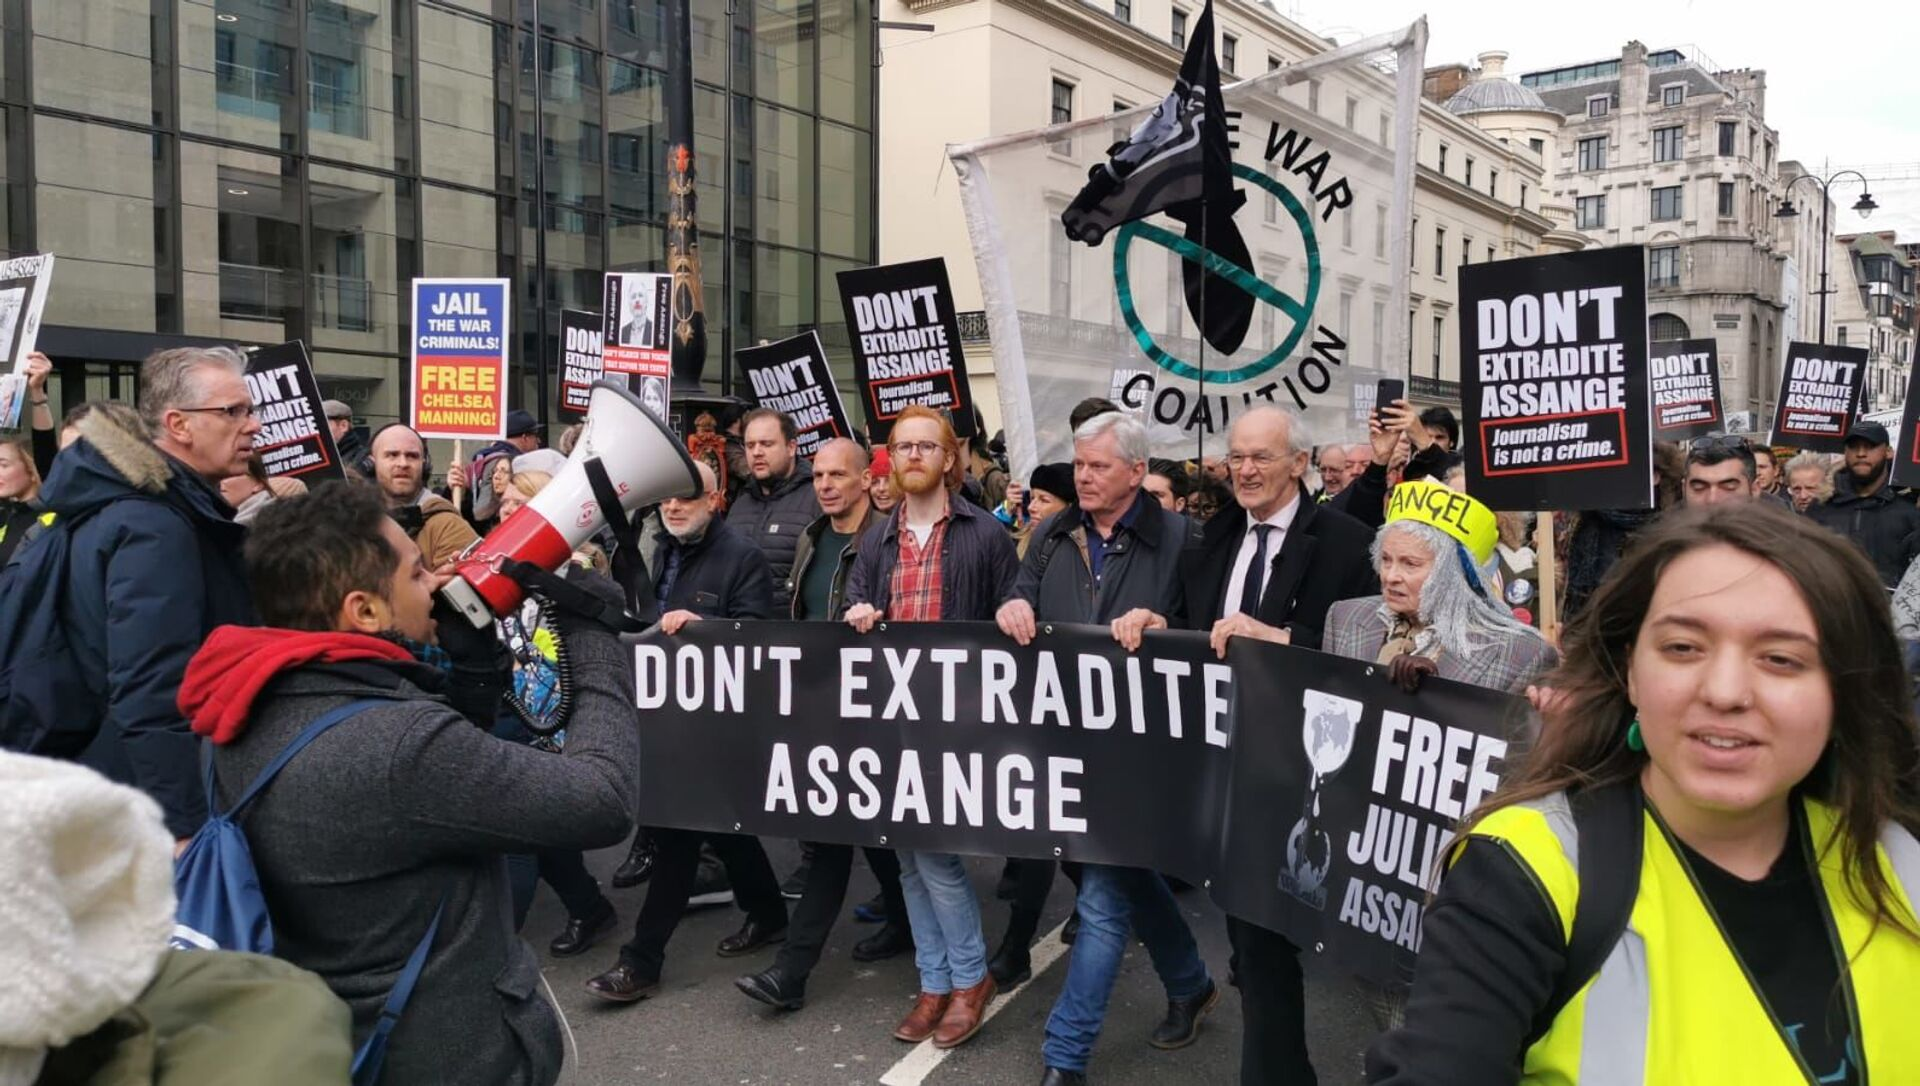 March in Support of Assange Continues in London - Sputnik Italia, 1920, 04.12.2020